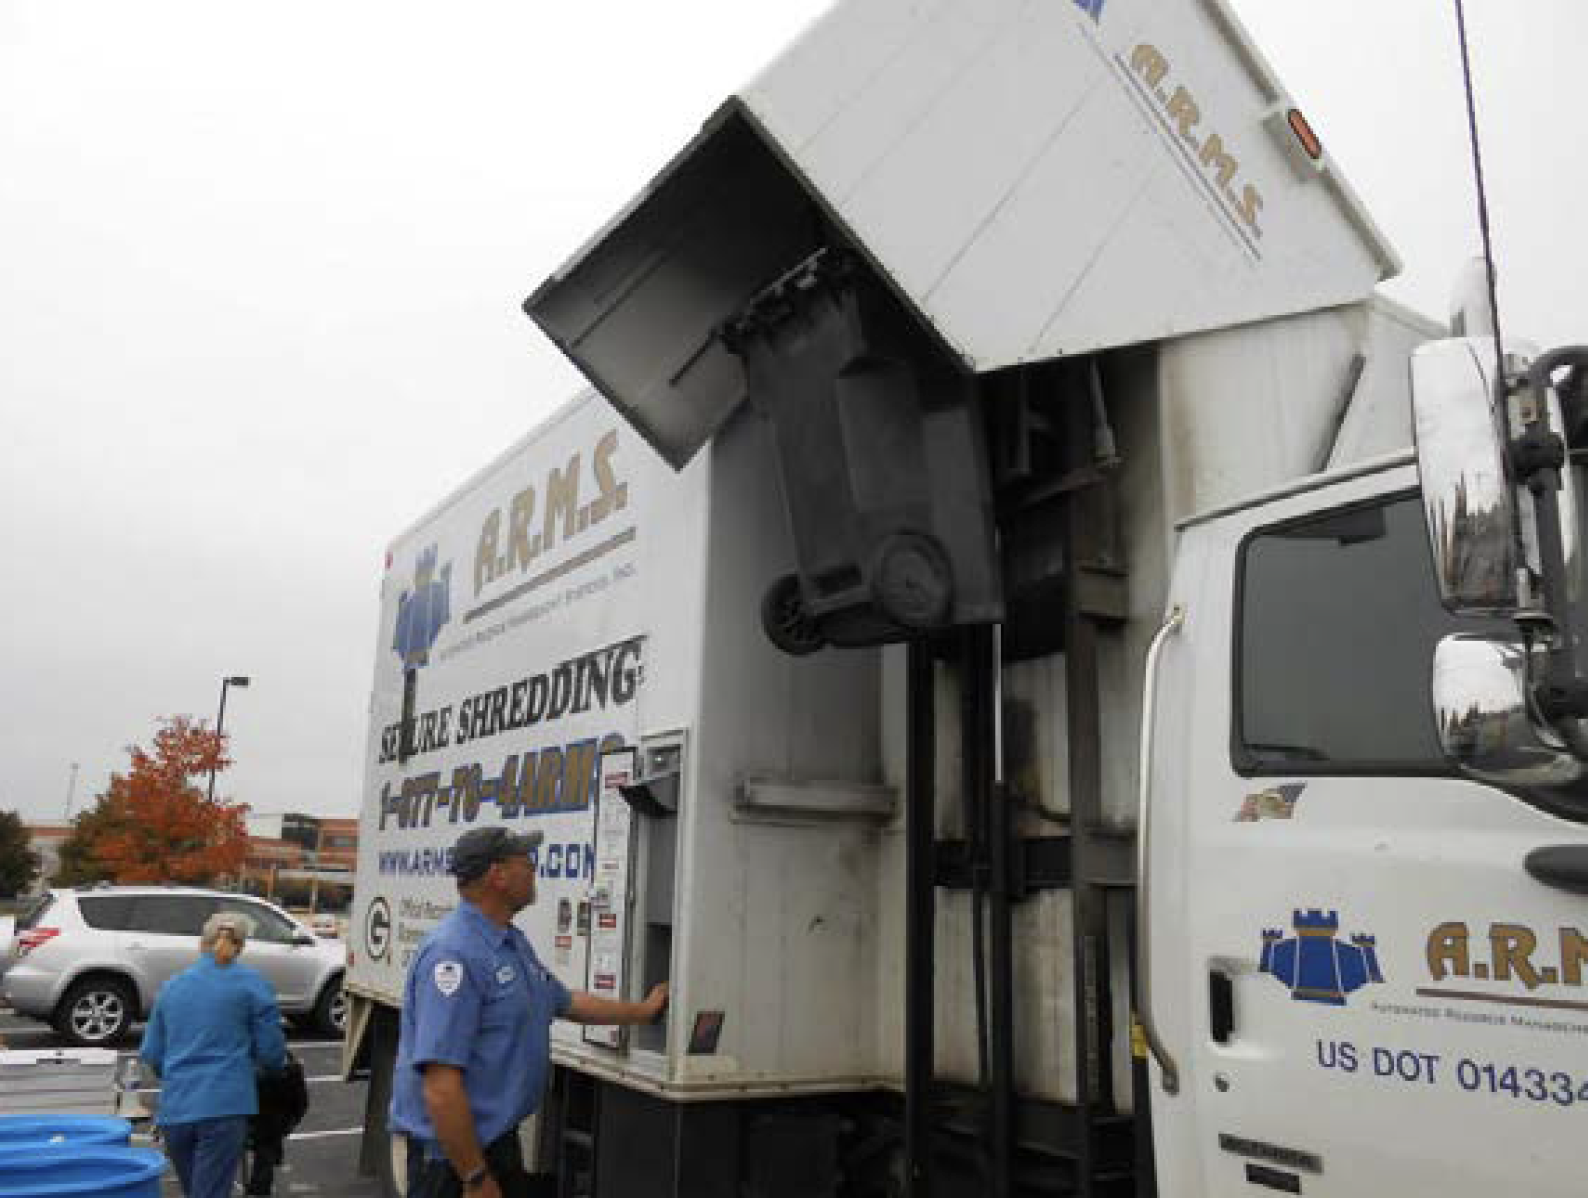 Bank First To Host Free Shredding Event This Saturday